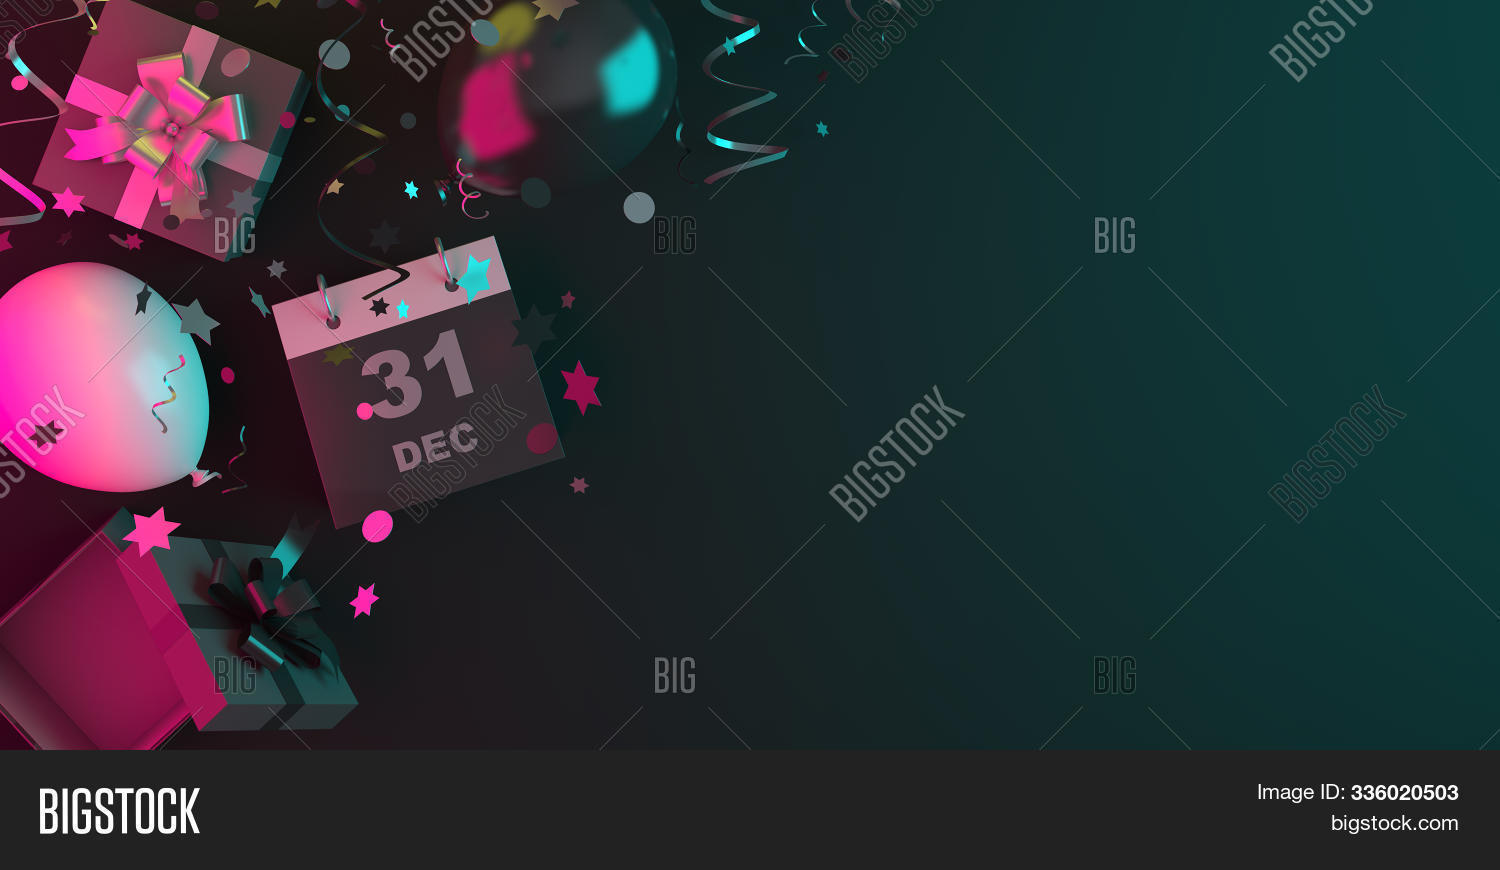 2020,31,3d,abstract,agenda,anniversary,background,balloon,banner,birthday,black,box,calendar,celebration,cheerful,concept,confetti,dark,date,december,disco,end,eve,event,fun,gift,glitter,glow,greeting,happy,happy-new-year-2020,helium,holiday,invitation,light,neon,new,new-year-3d,new-year-abstract,new-year-background,new-year-banner,new-year-greeting-card,night,nightclub,party,ribbon,template,time,wallpaper,year